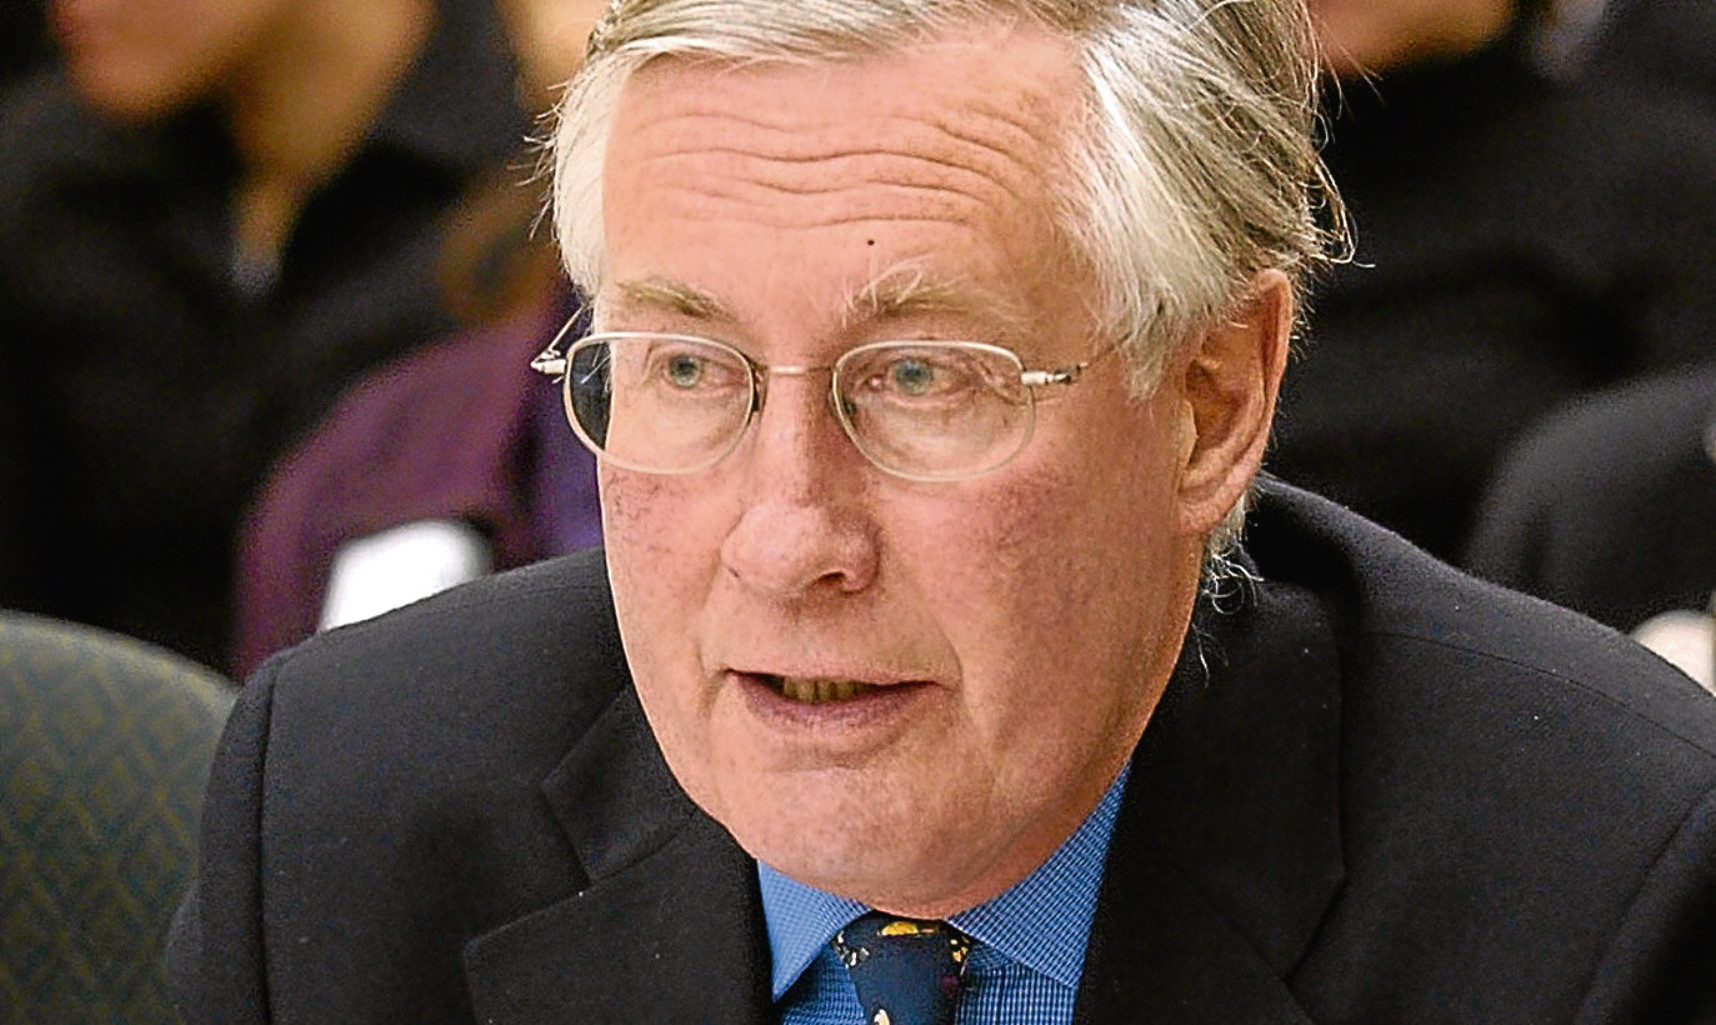 The late Michael Meacher who, for Jim, was the last good UK environment secretary.